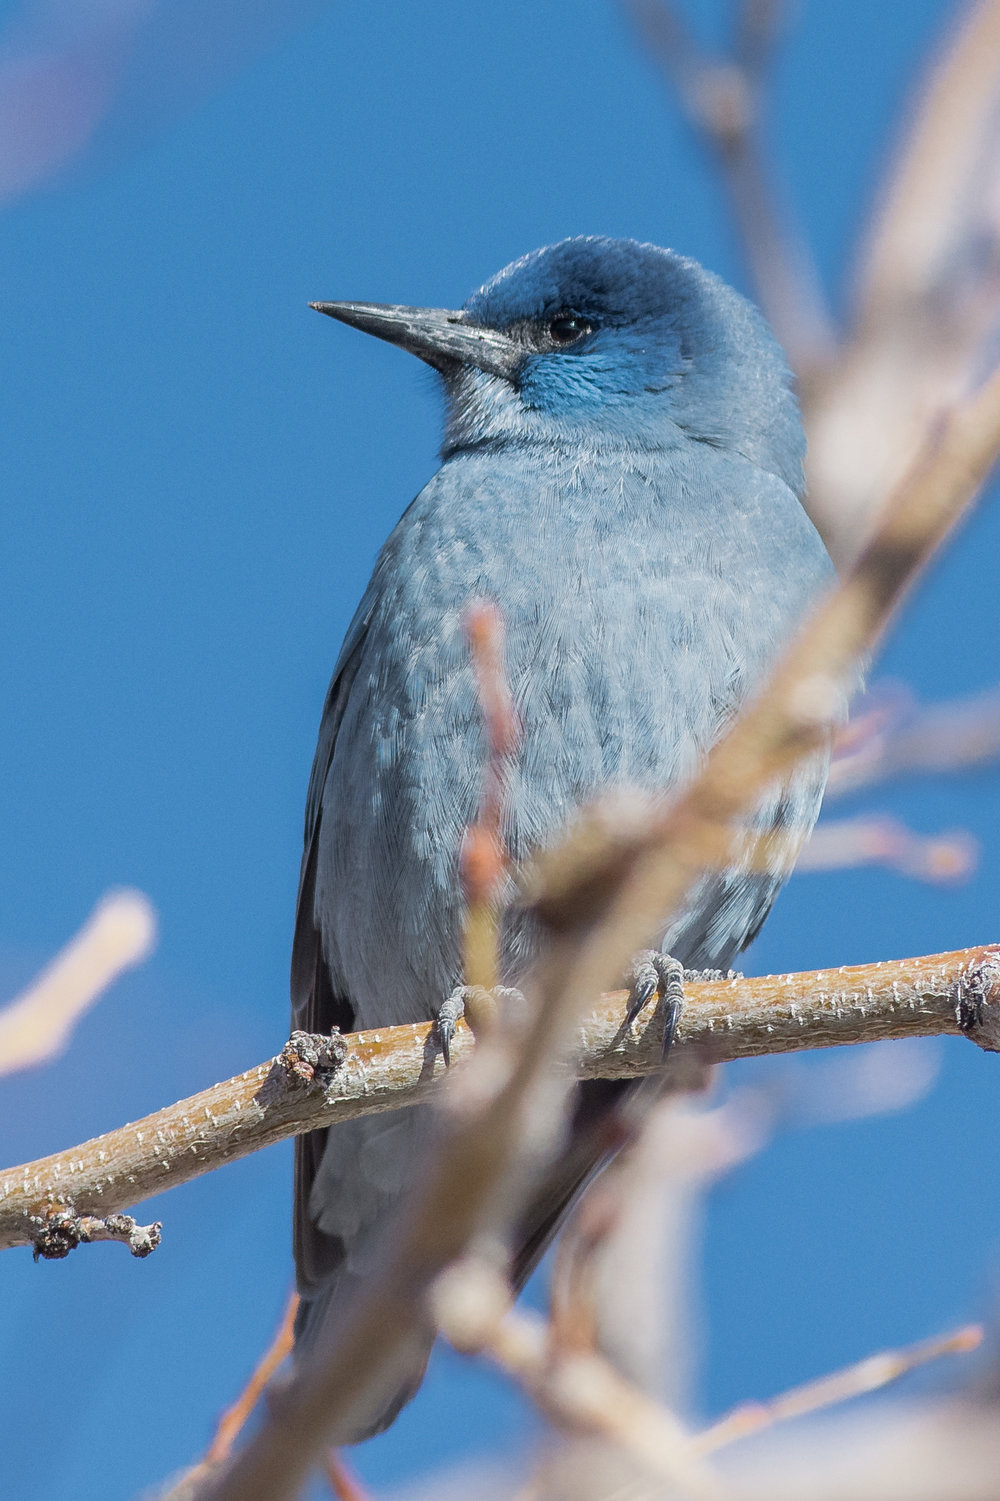 Pinyon Jay (Gymnorhinus cyanocephalus) - Carson City CBC Area 2a, LYO (NV)  EQ: D7200, 300mm f/2.8   Taken: 12-18-2016 at 12:19   Settings: 450 mm (35mm eqiv), 1/3200s, f/4.5, ISO640, +1/3EV         Conditions: Sunny